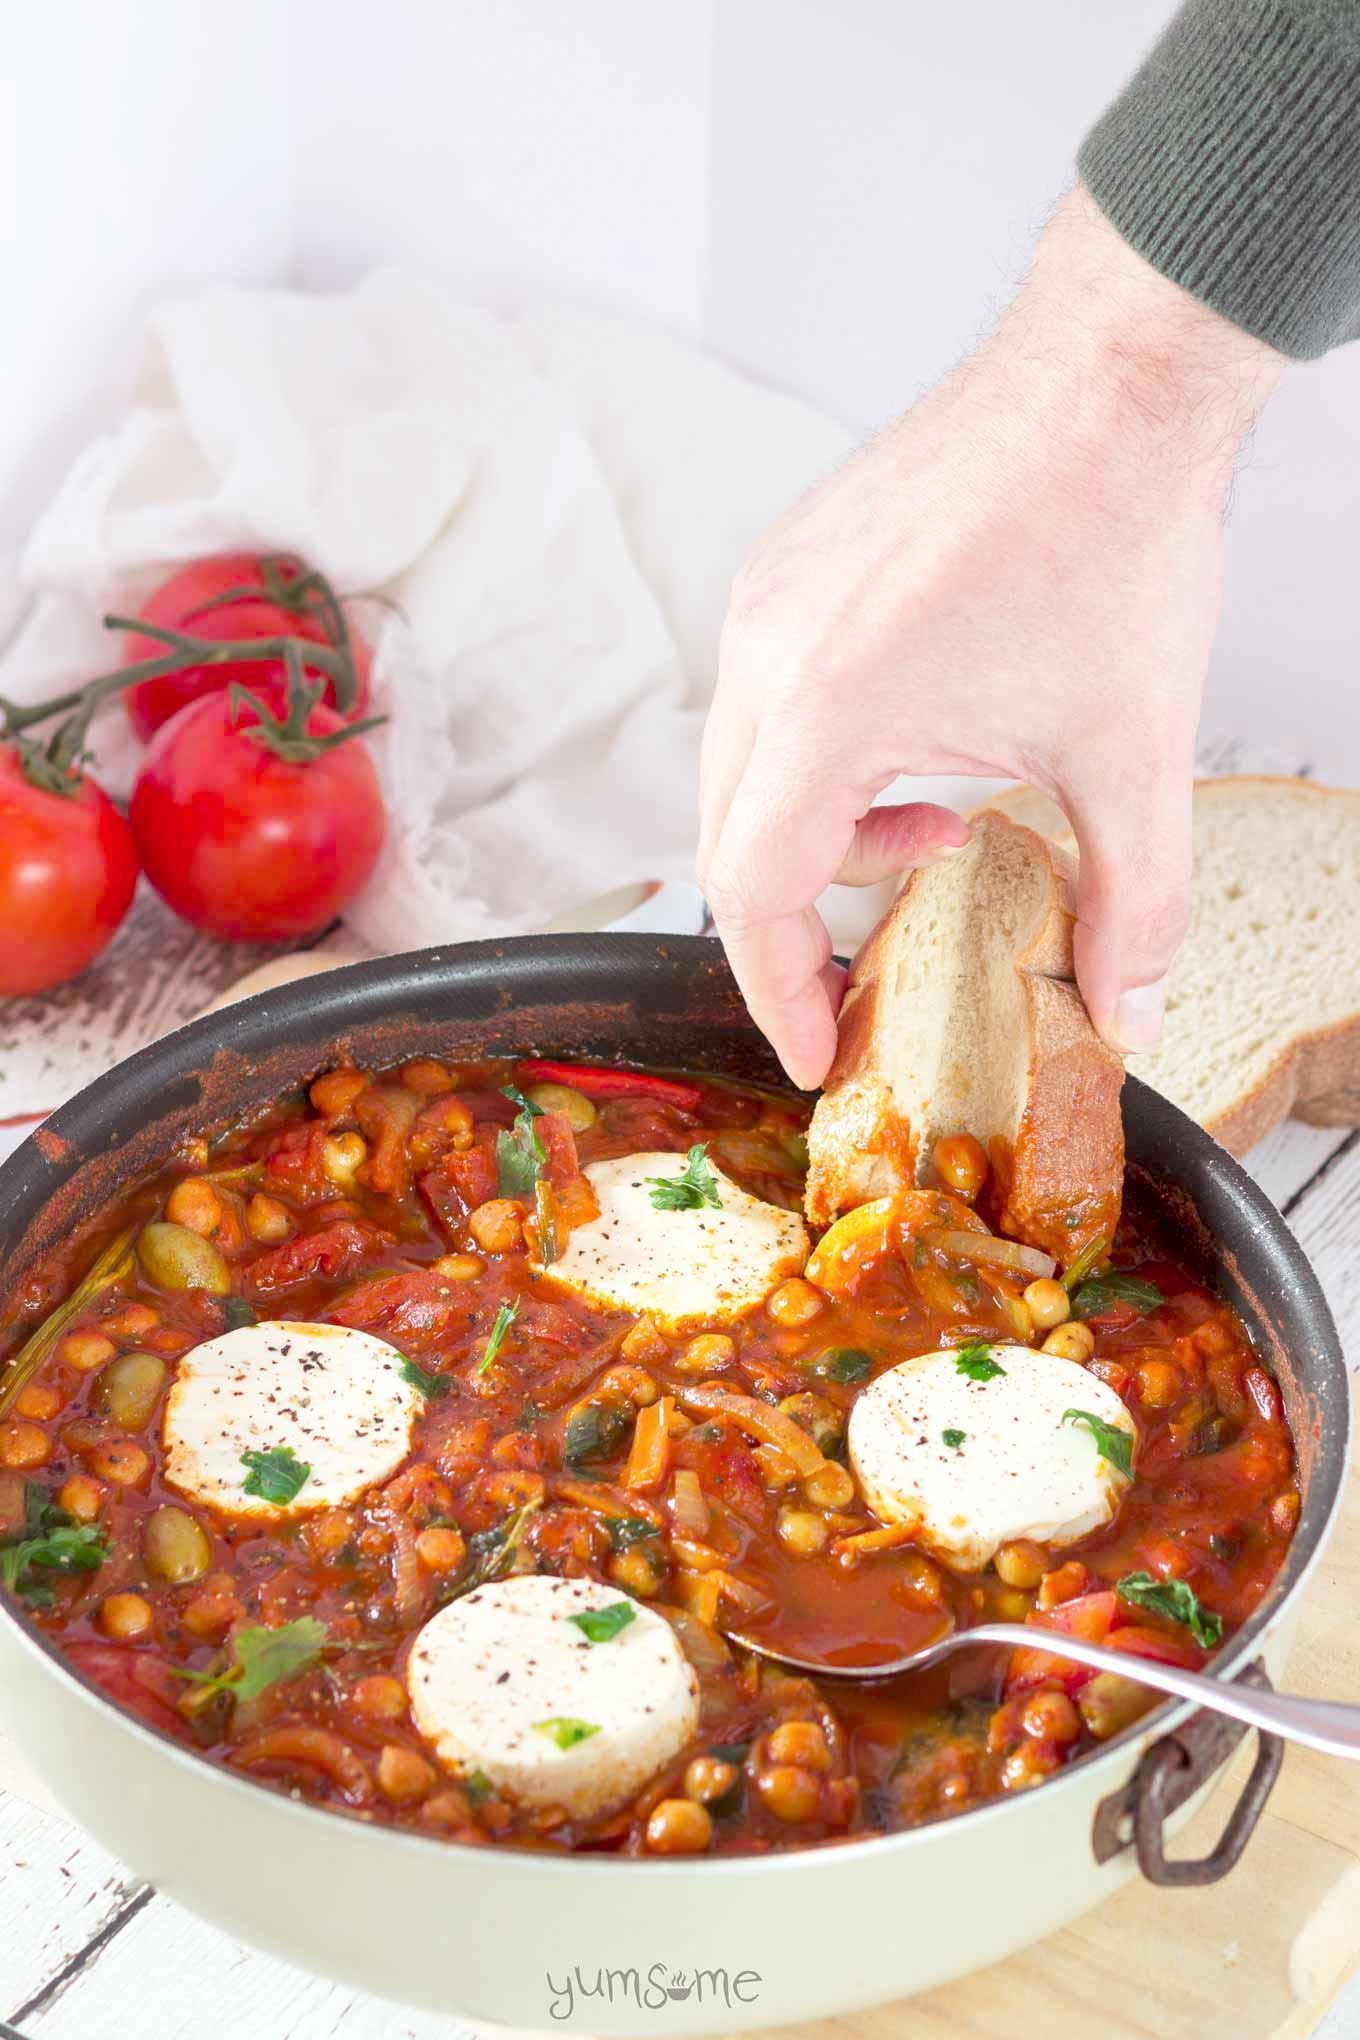 A hand dipping some bread into a pan of vegan shakshuka.